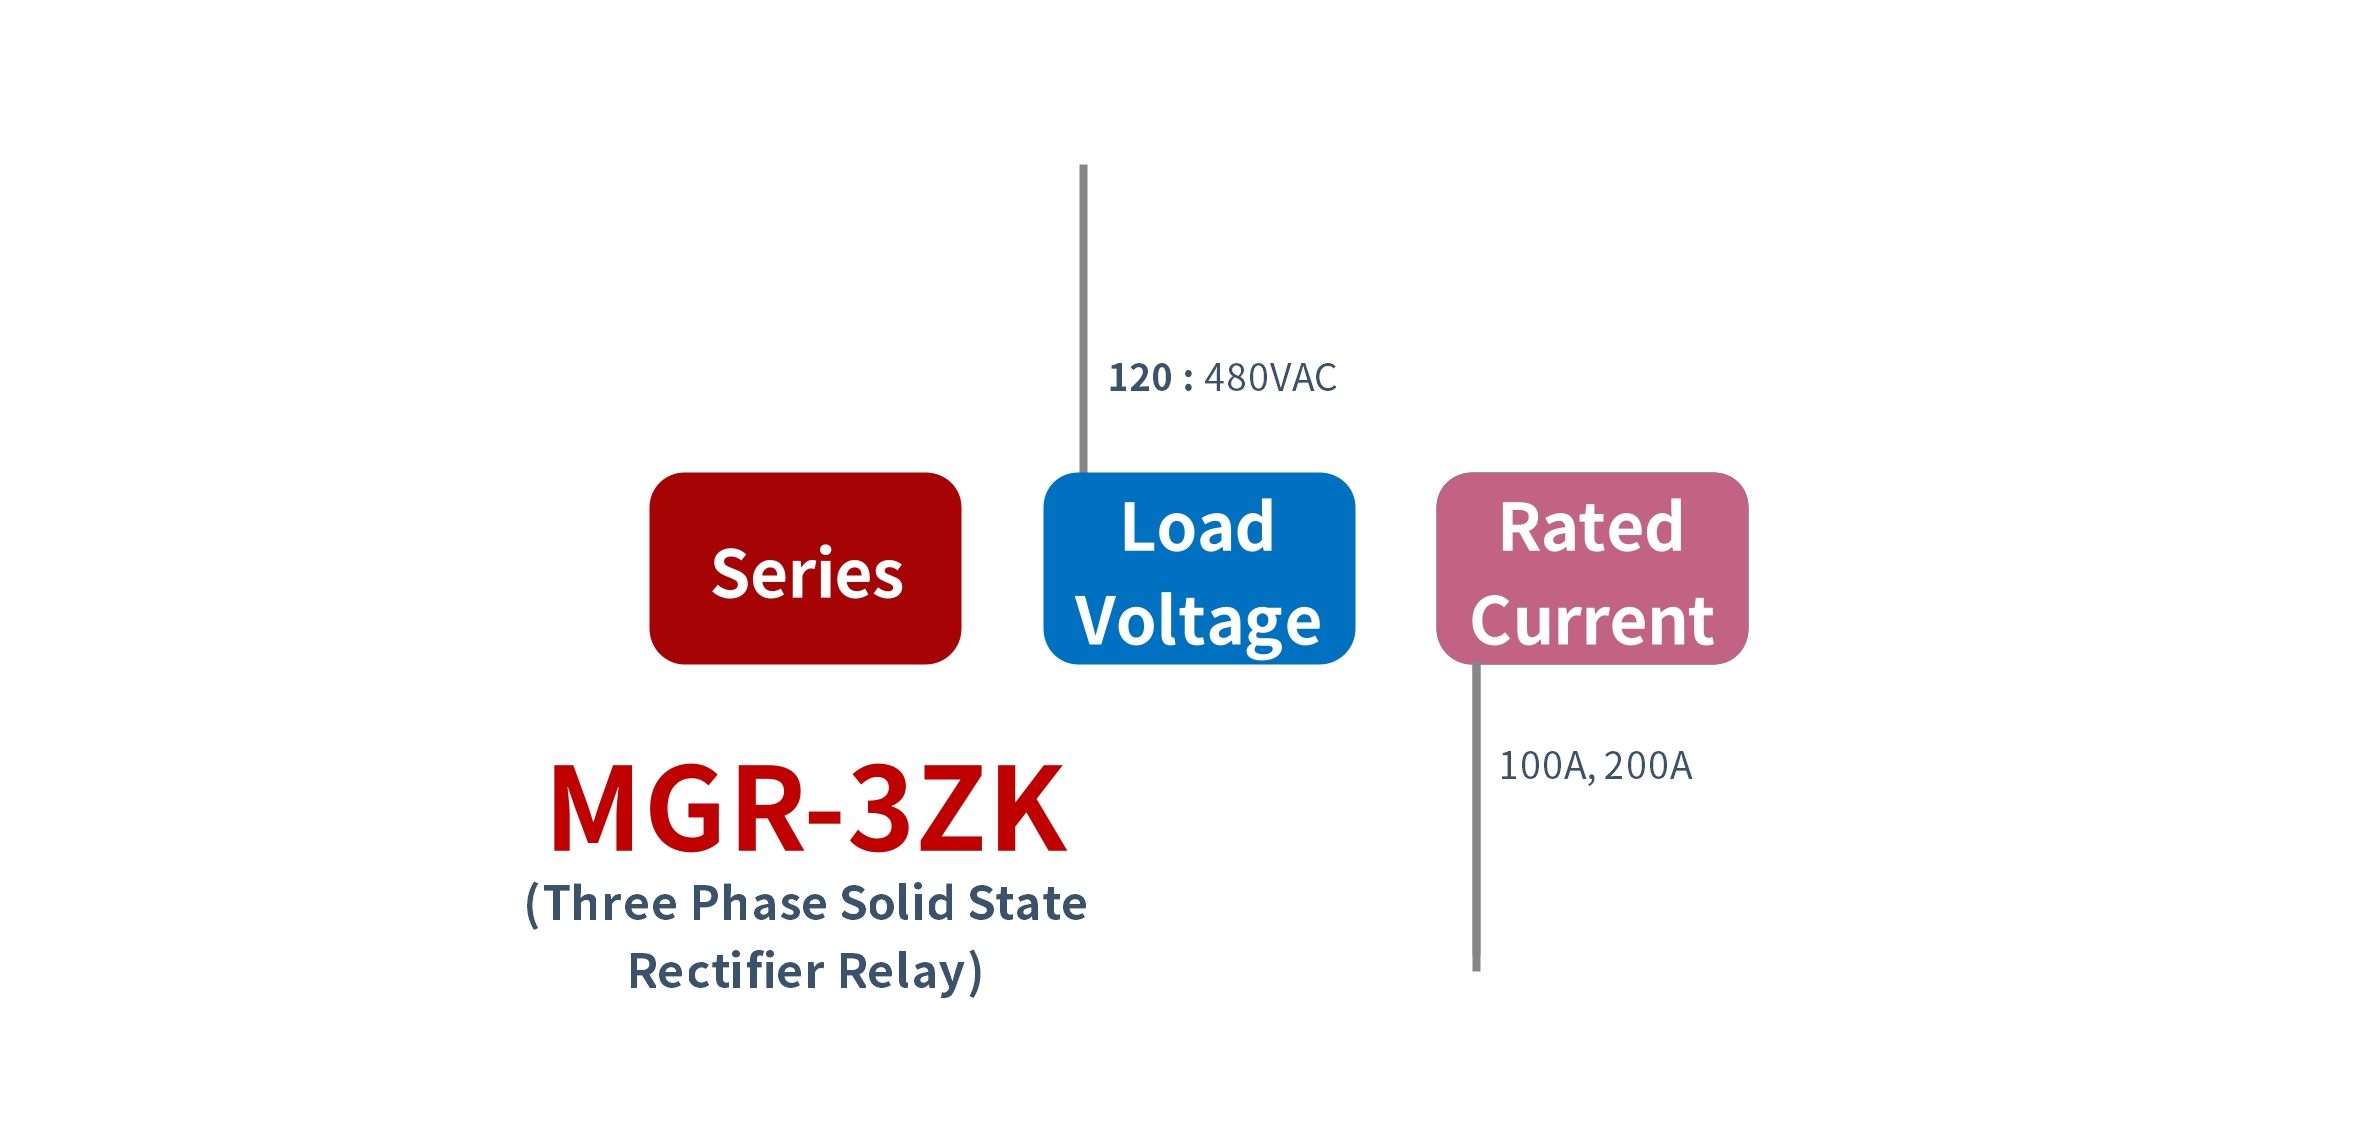 How to order MGR-3ZK Series Solid State Rectifier